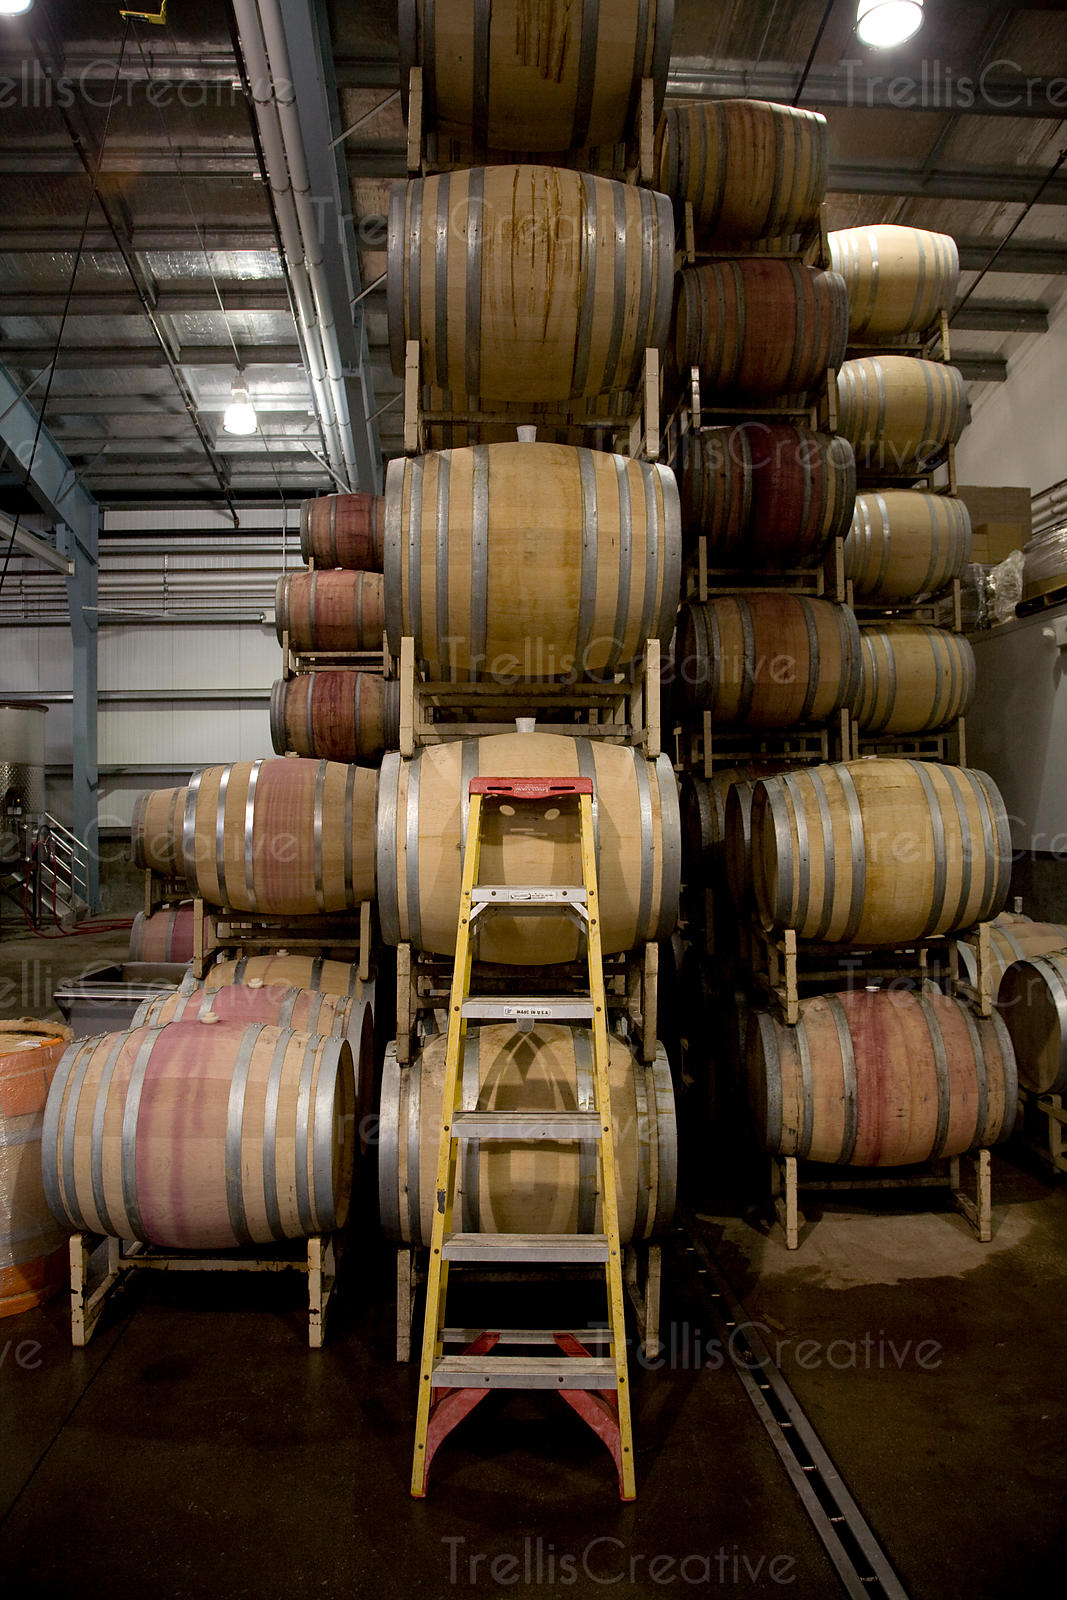 A ladder leans against several stacked oak wine barrels